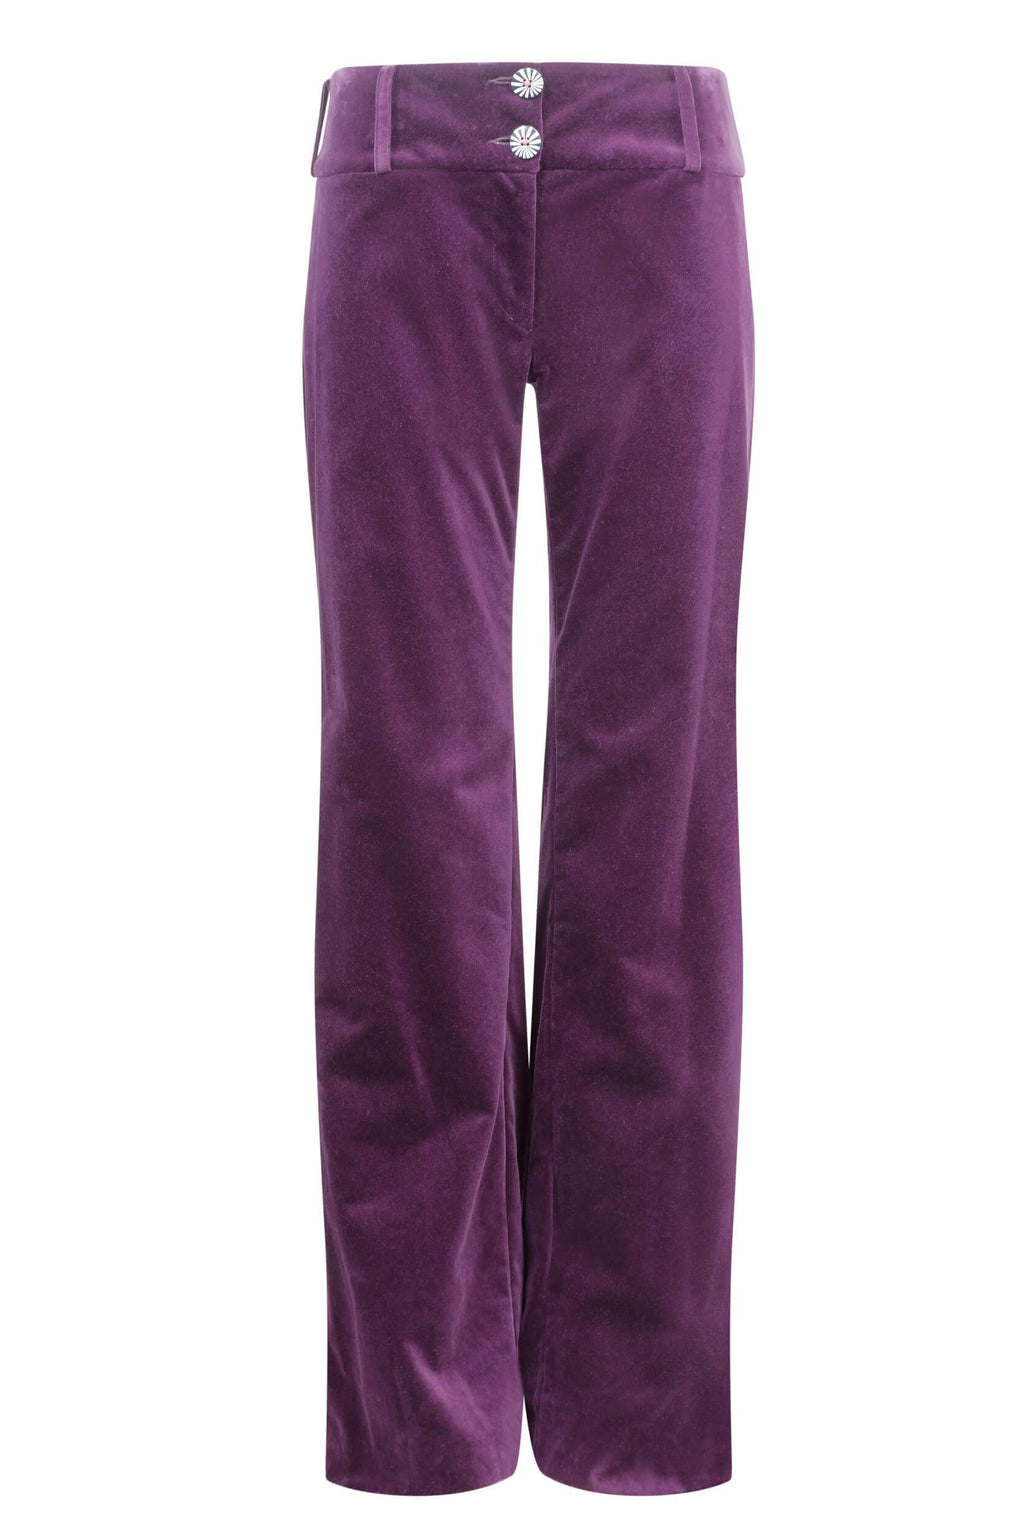 purple-velvet-womens-trousers